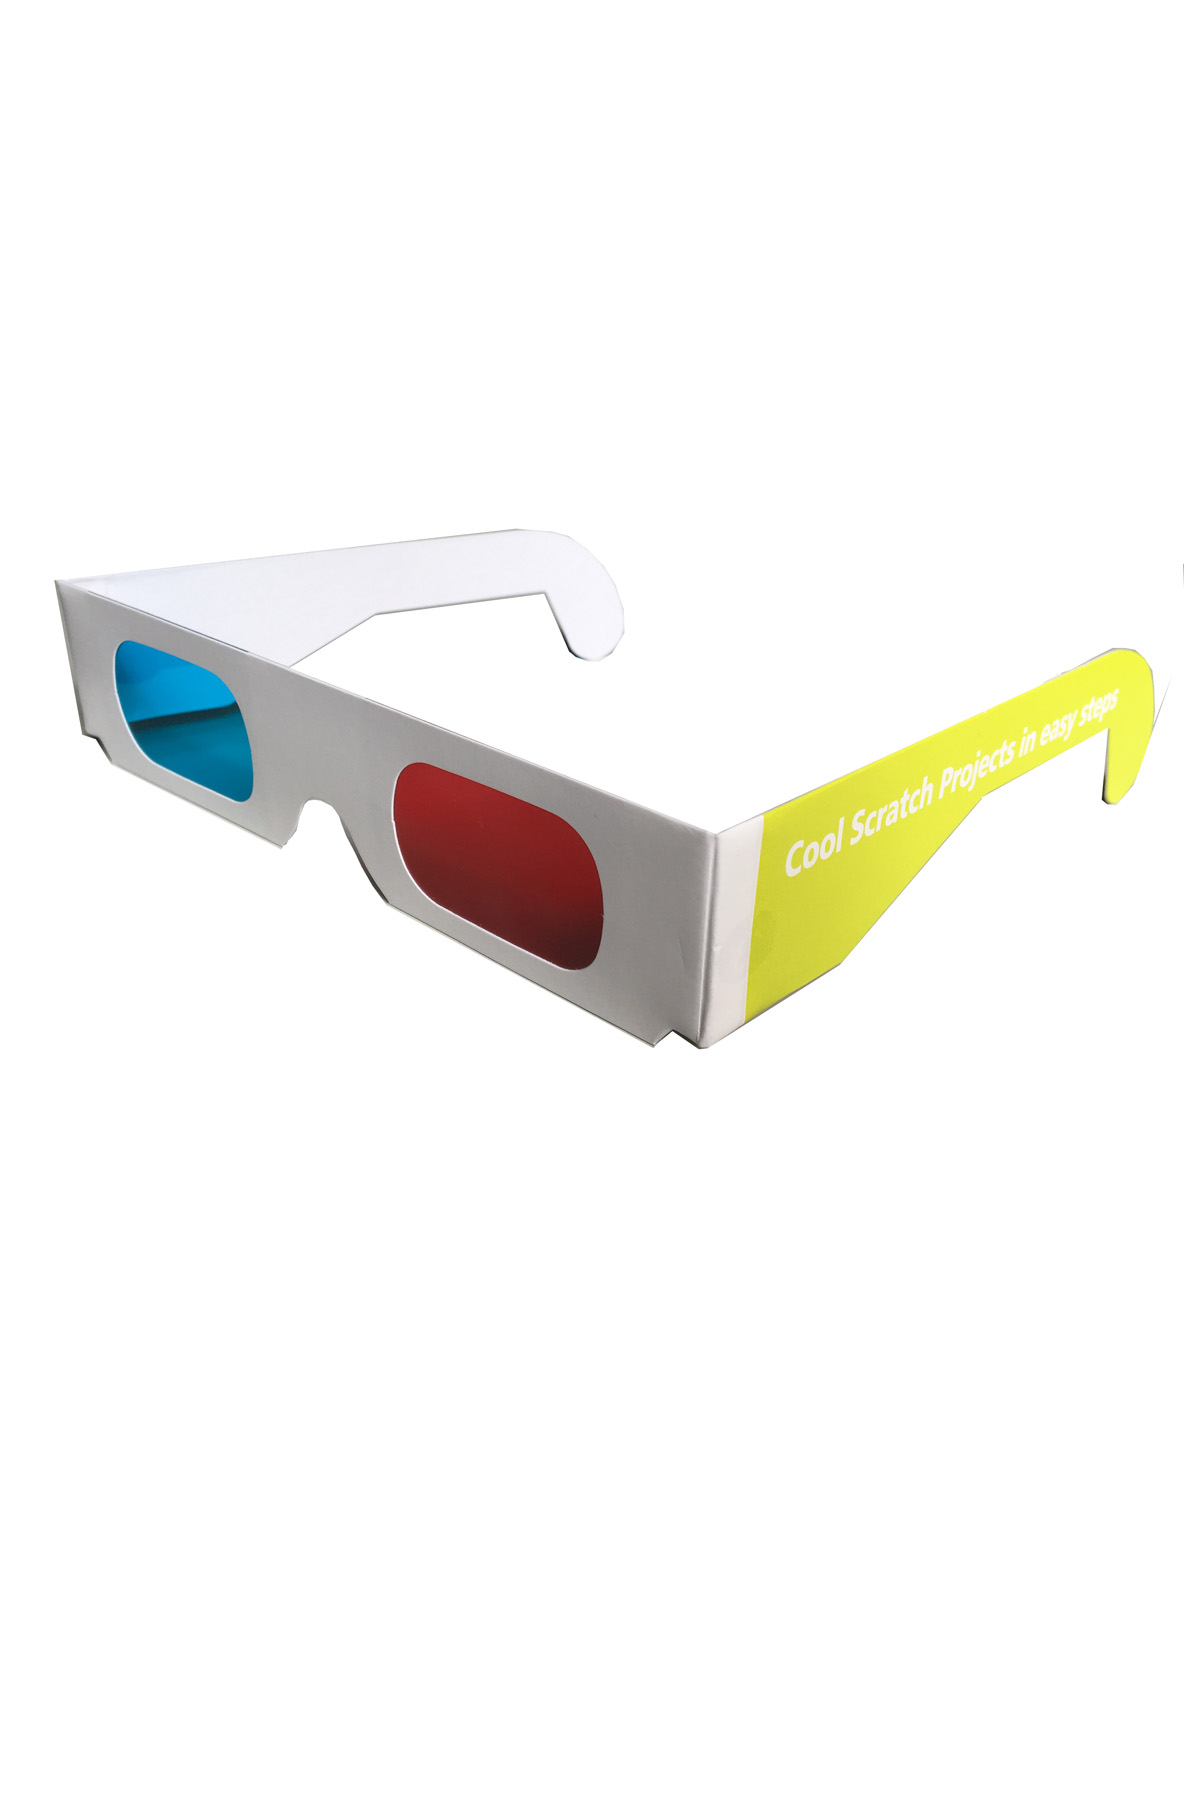 In Easy Steps 3D glasses